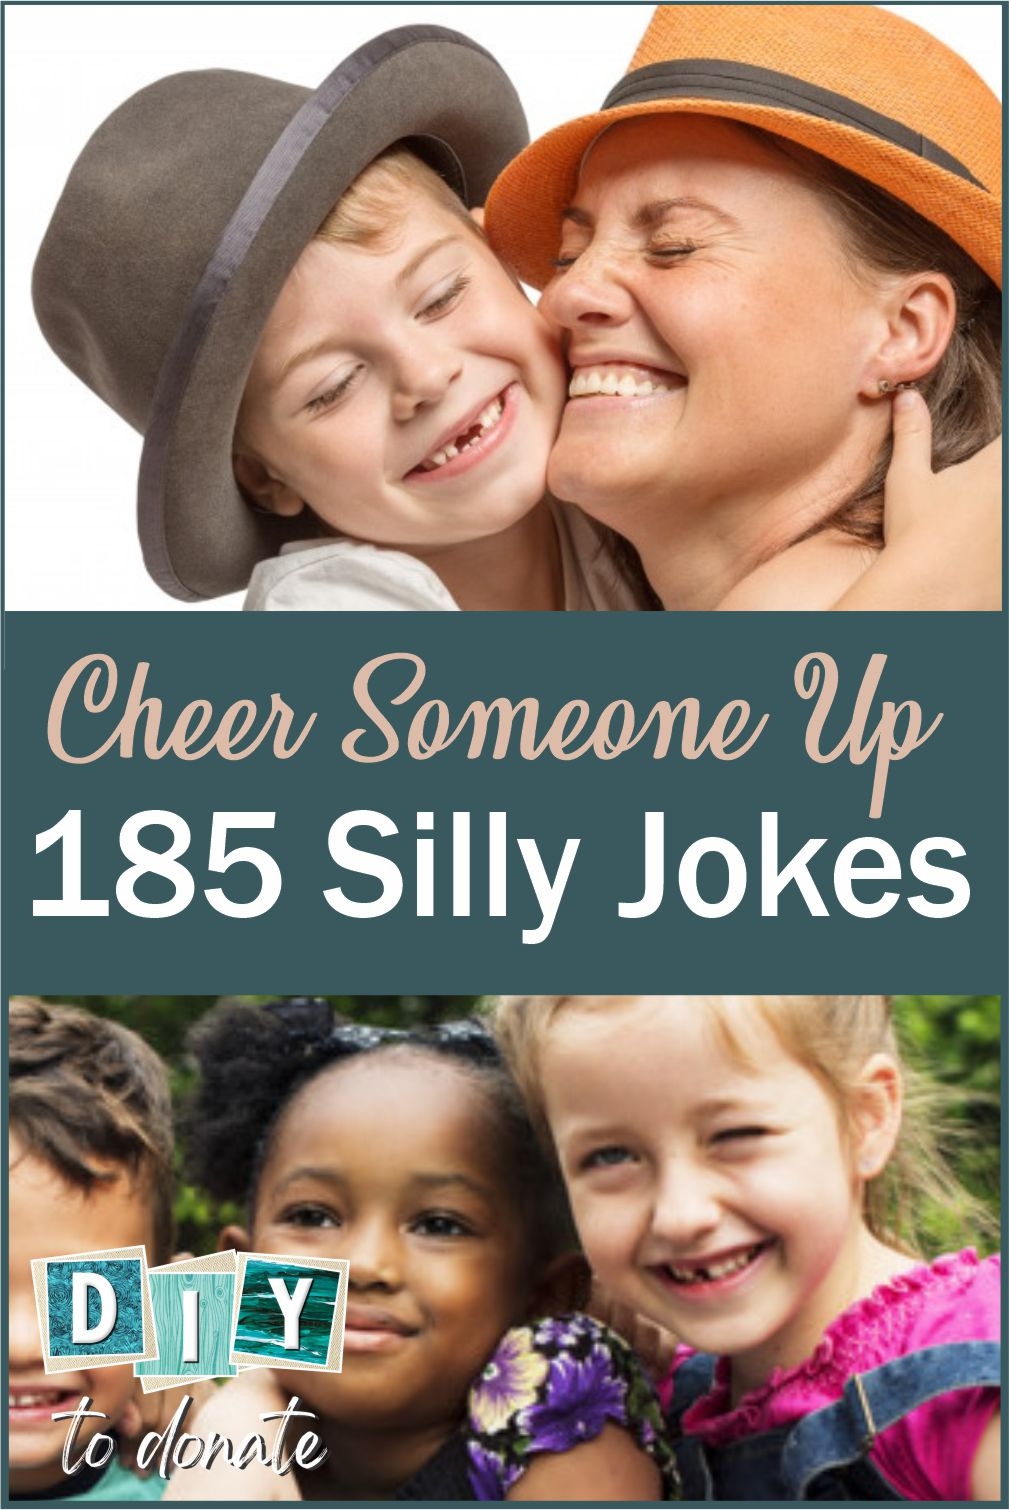 Add silly jokes to a card or a letter and send to someone who might need cheering up like hospitalized kids or those who receive Meals on Wheels. #diytodonate #donate #diy #jokes #sillyjokes #laugh #smile #besilly #cheer